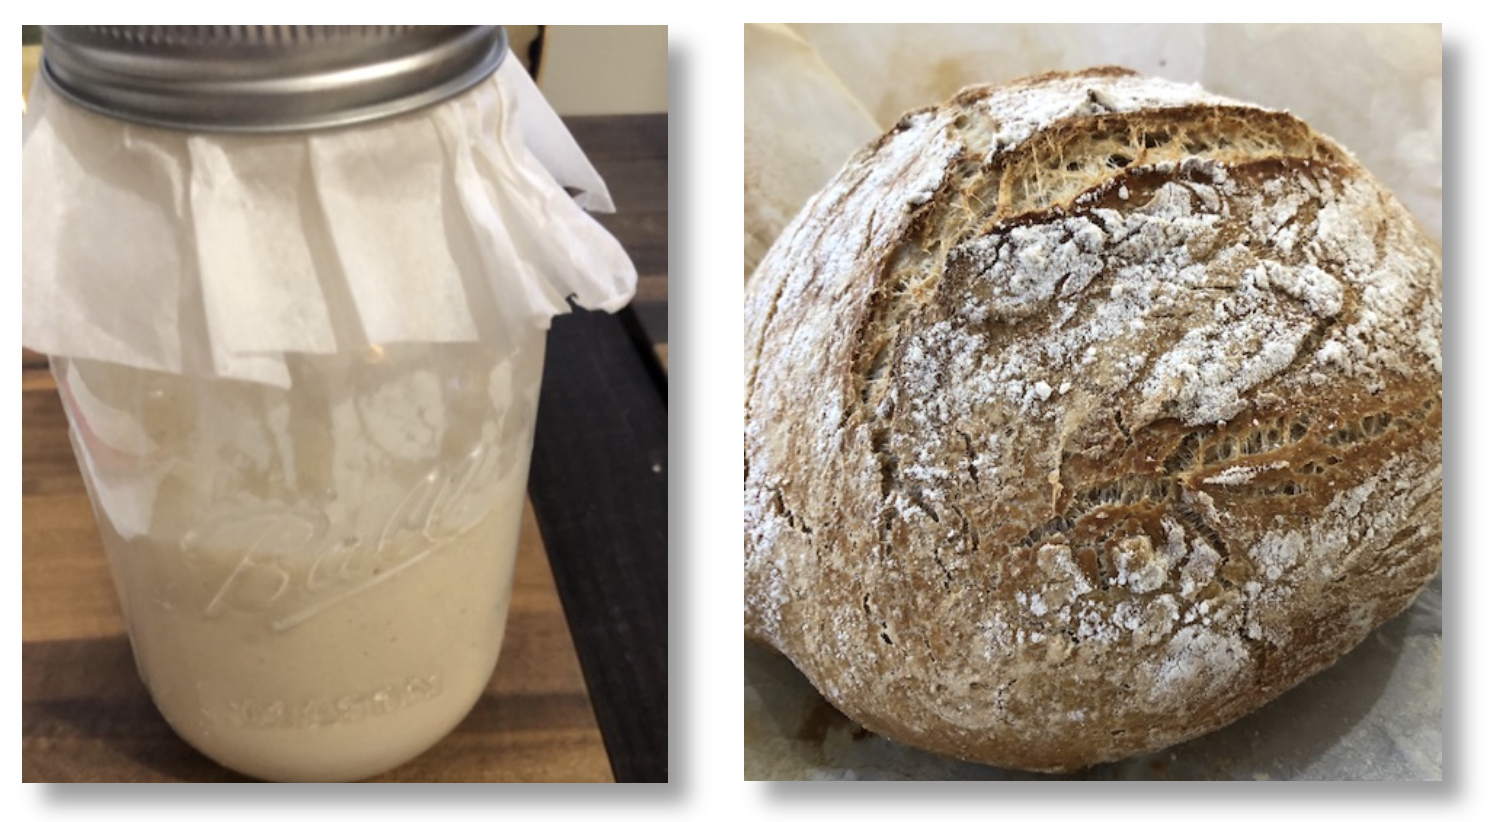 Sourdough starter and my best loaf of sourdough bread.